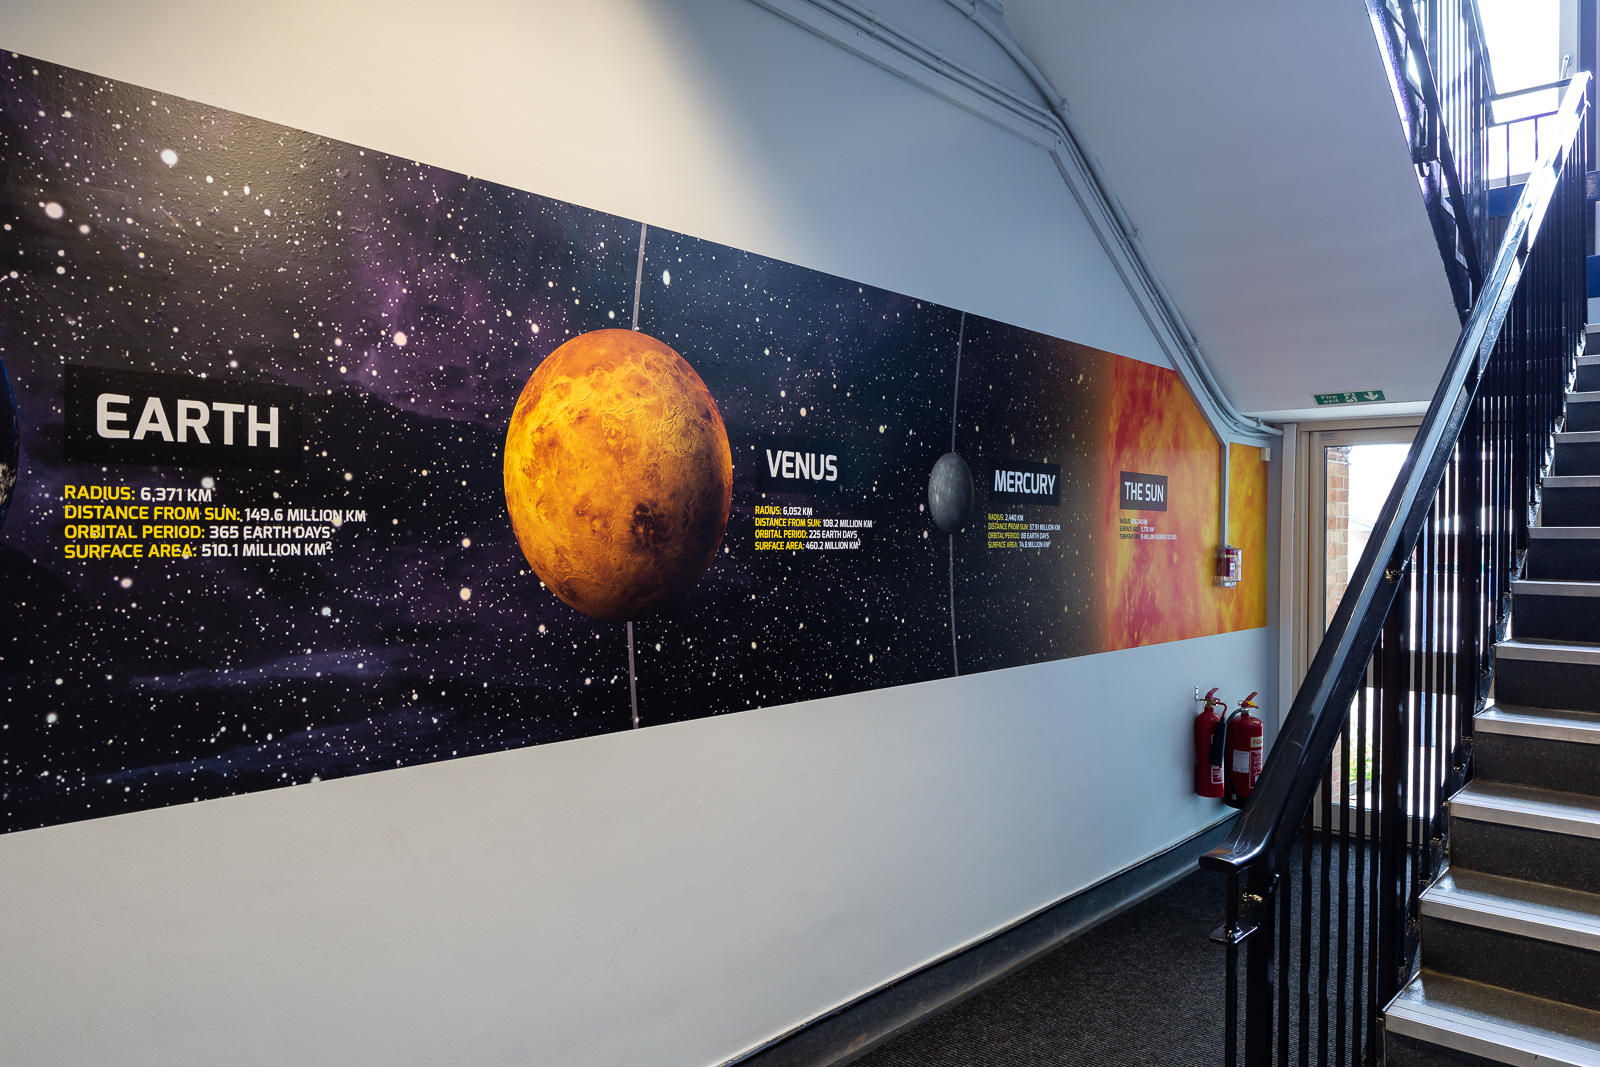 stairway wall art display solar system themed